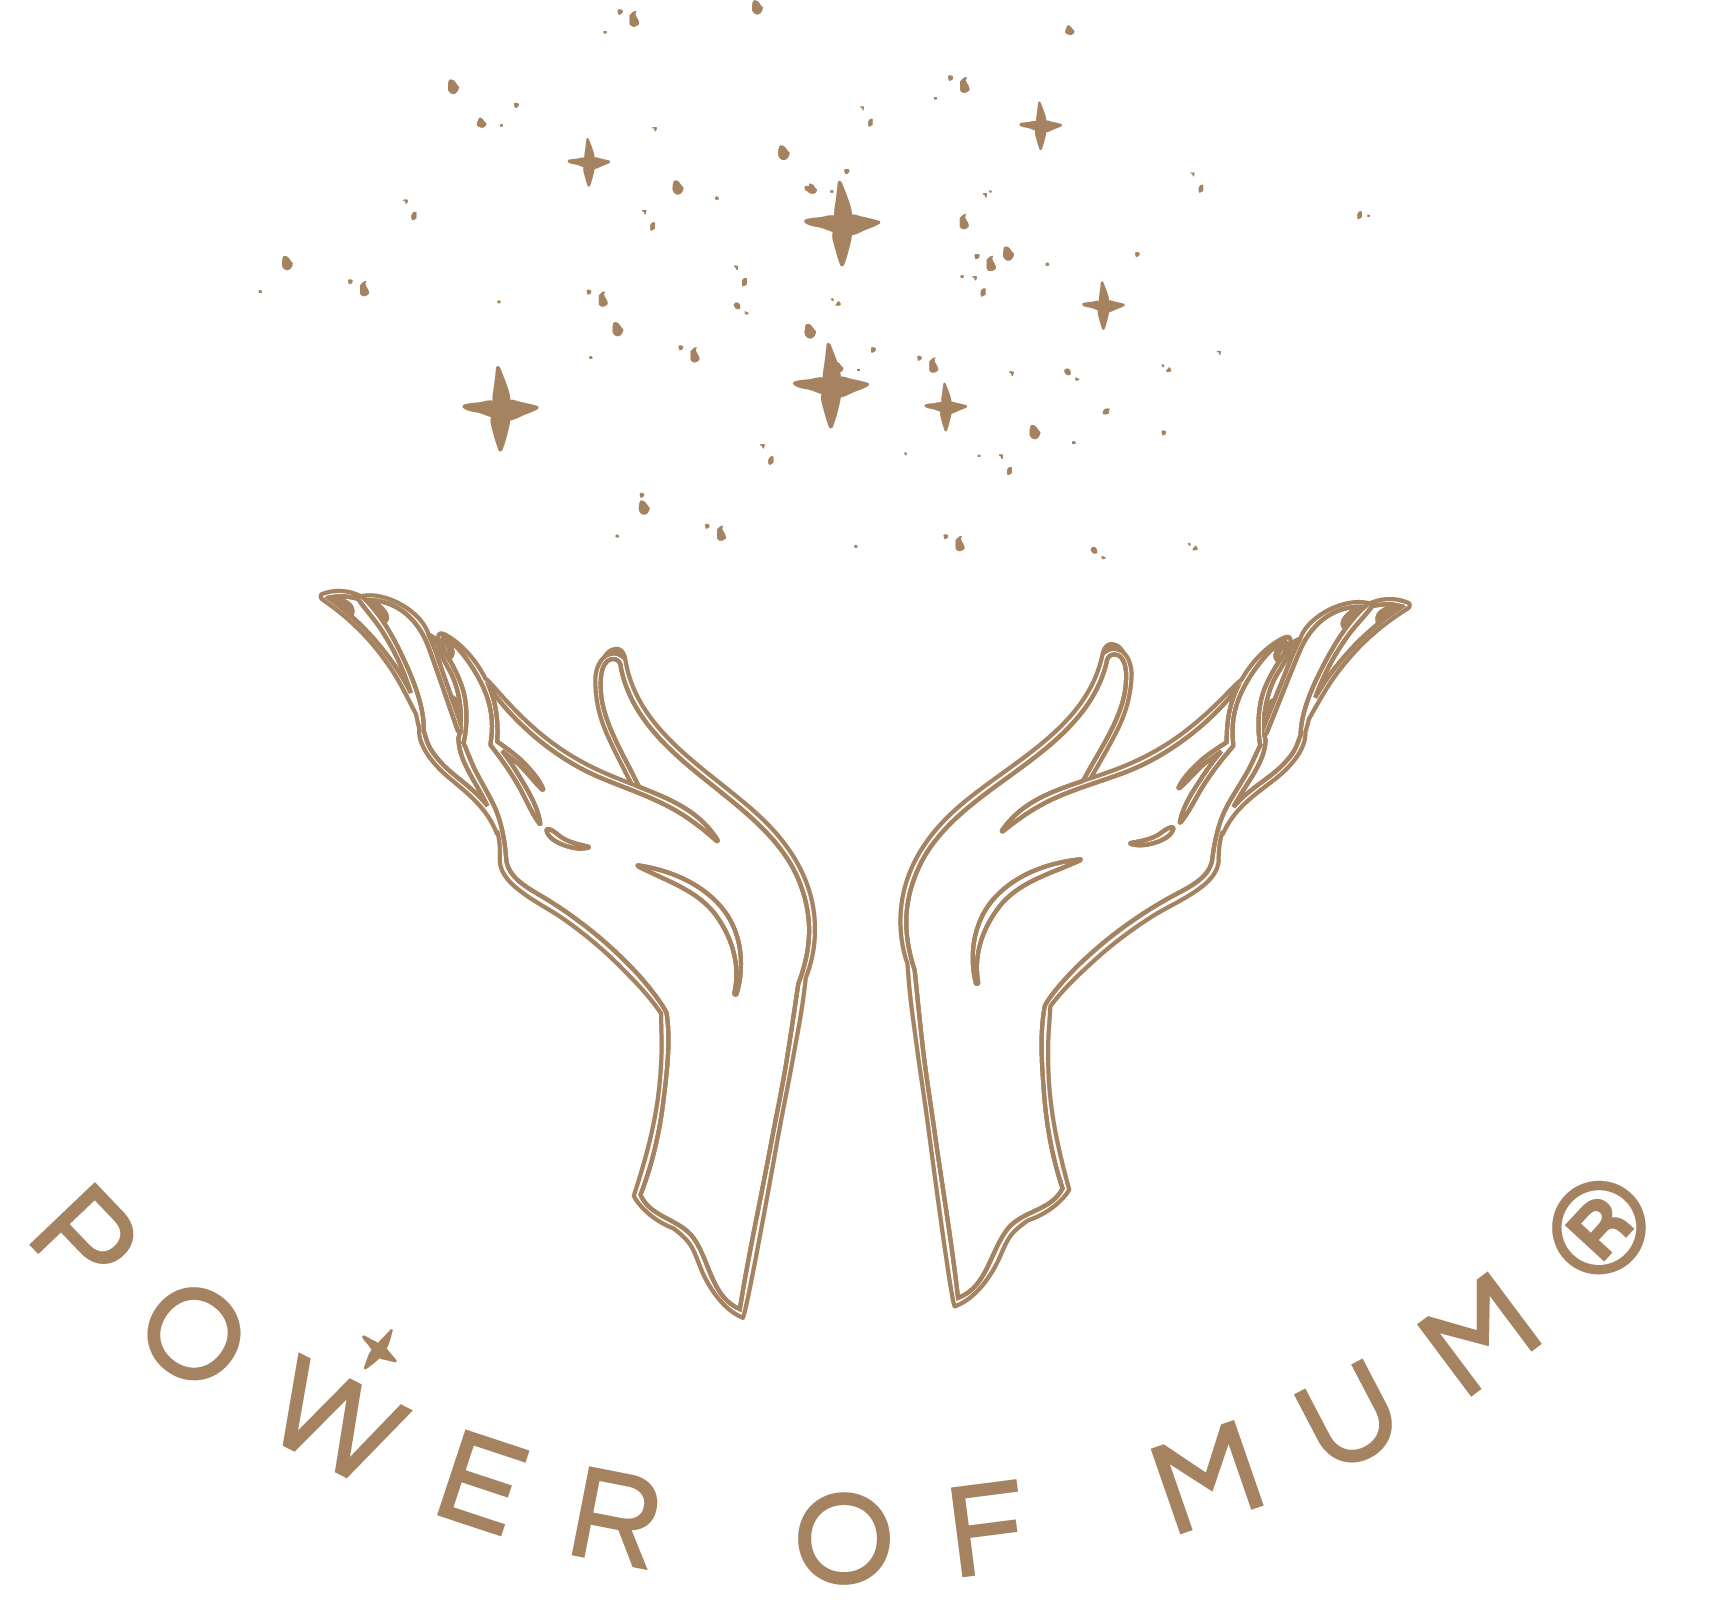 hight resolution of power of mum episode 7 with suzy reading why self care is essential the power of mantras and how life looks when we add self care to it power of mum